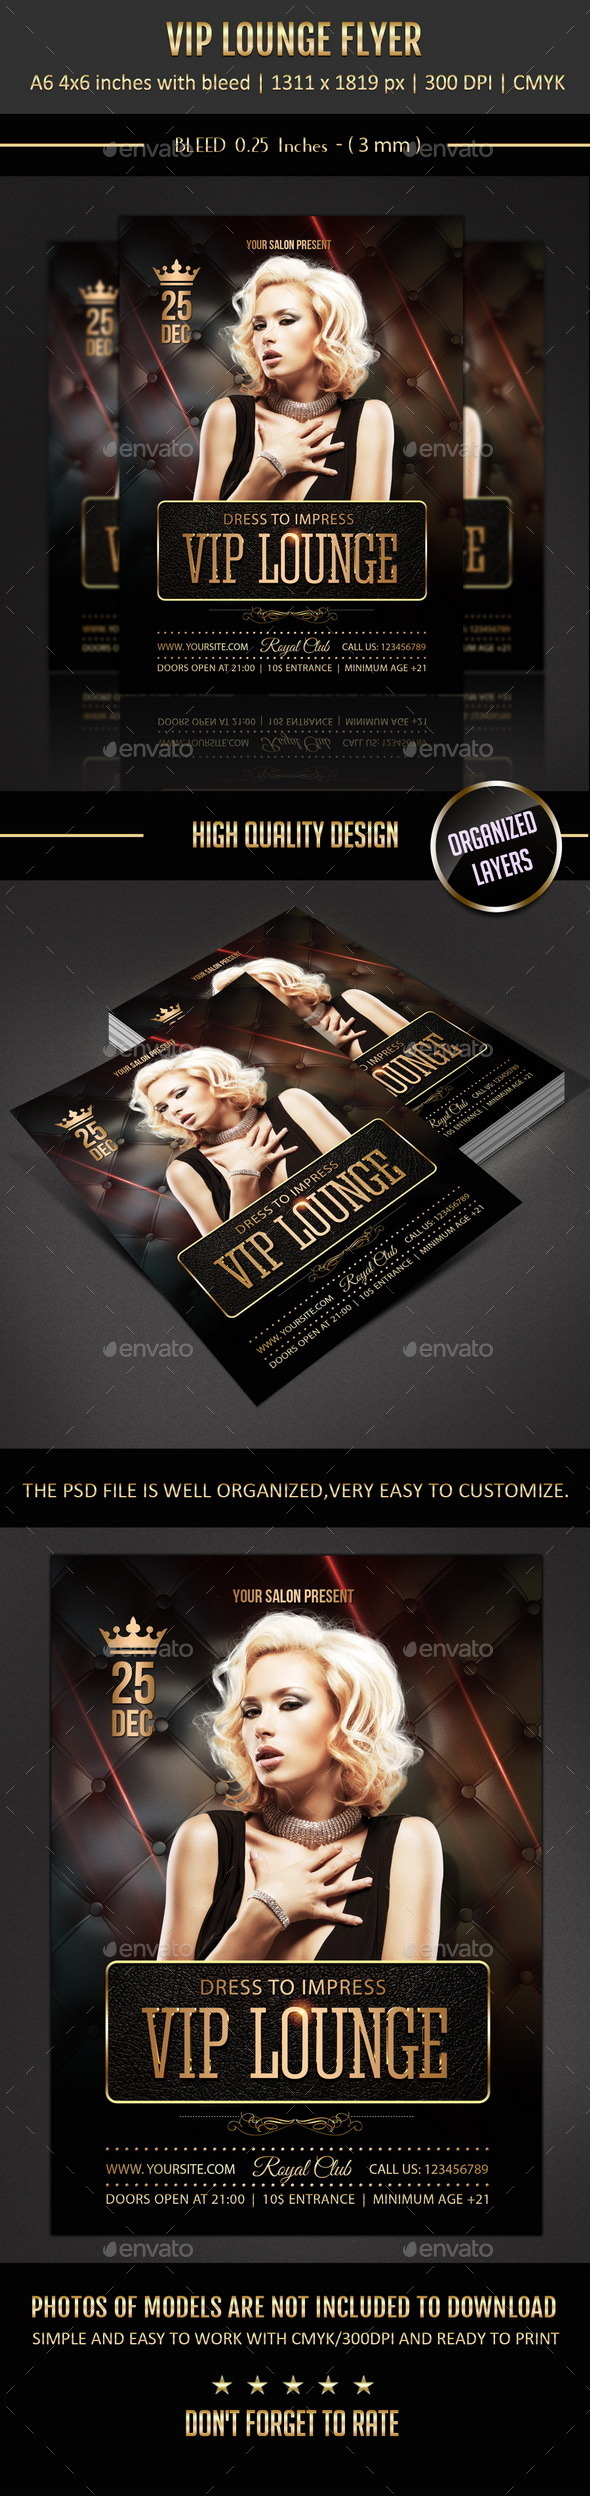 GraphicRiver Vip Longe Flyer 9693227